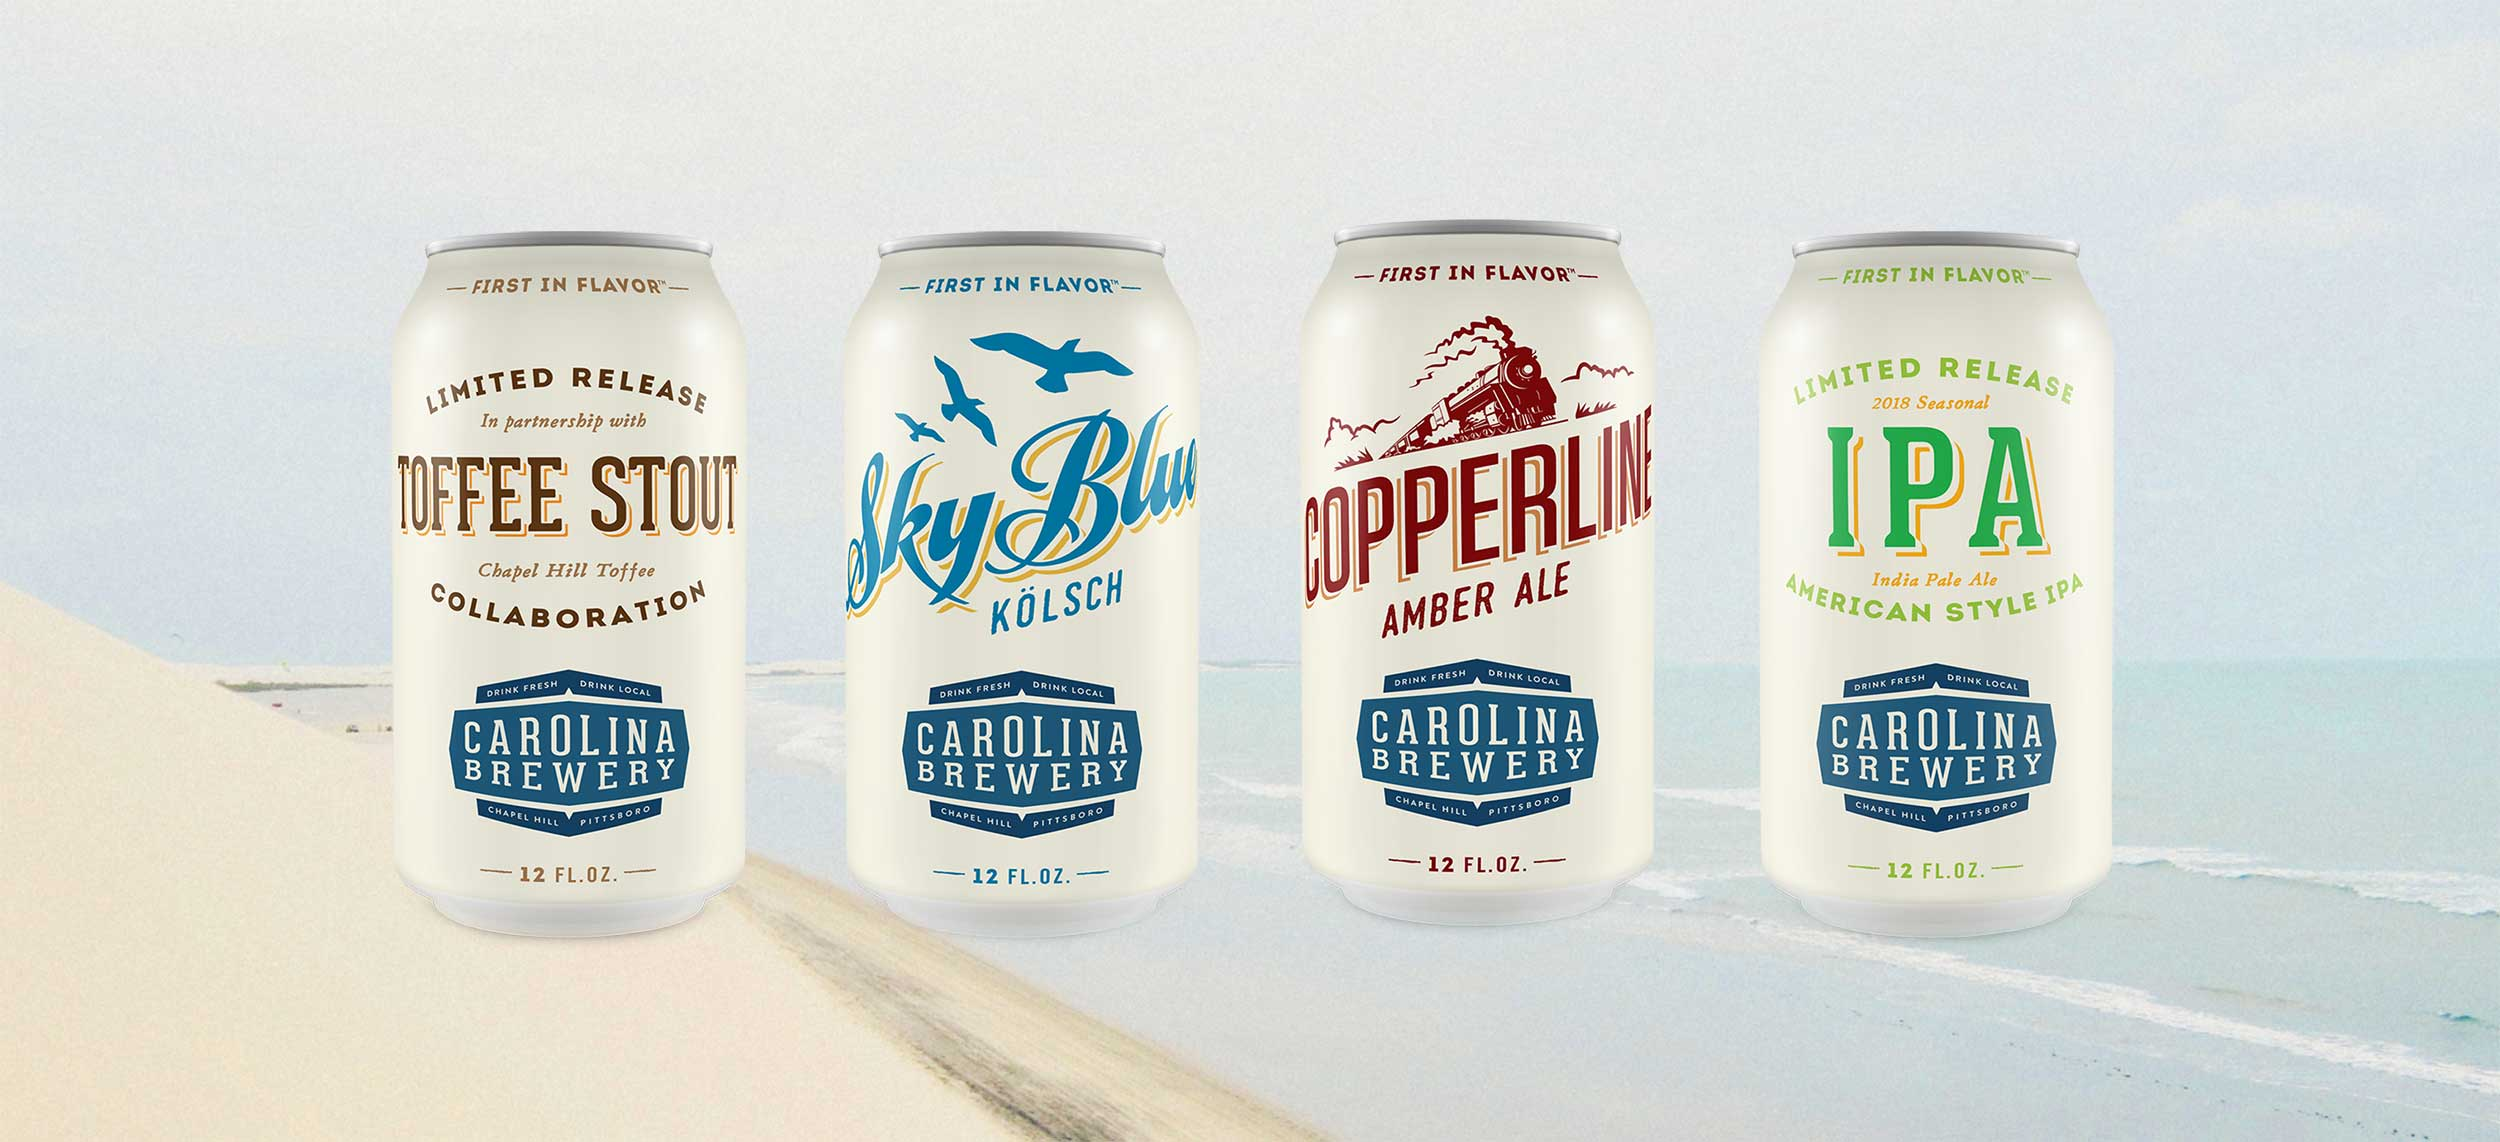 Craft-Beer-Branding_Ebbing_Carolina-Brewery-Rebrand-New-Can-Designs.jpg